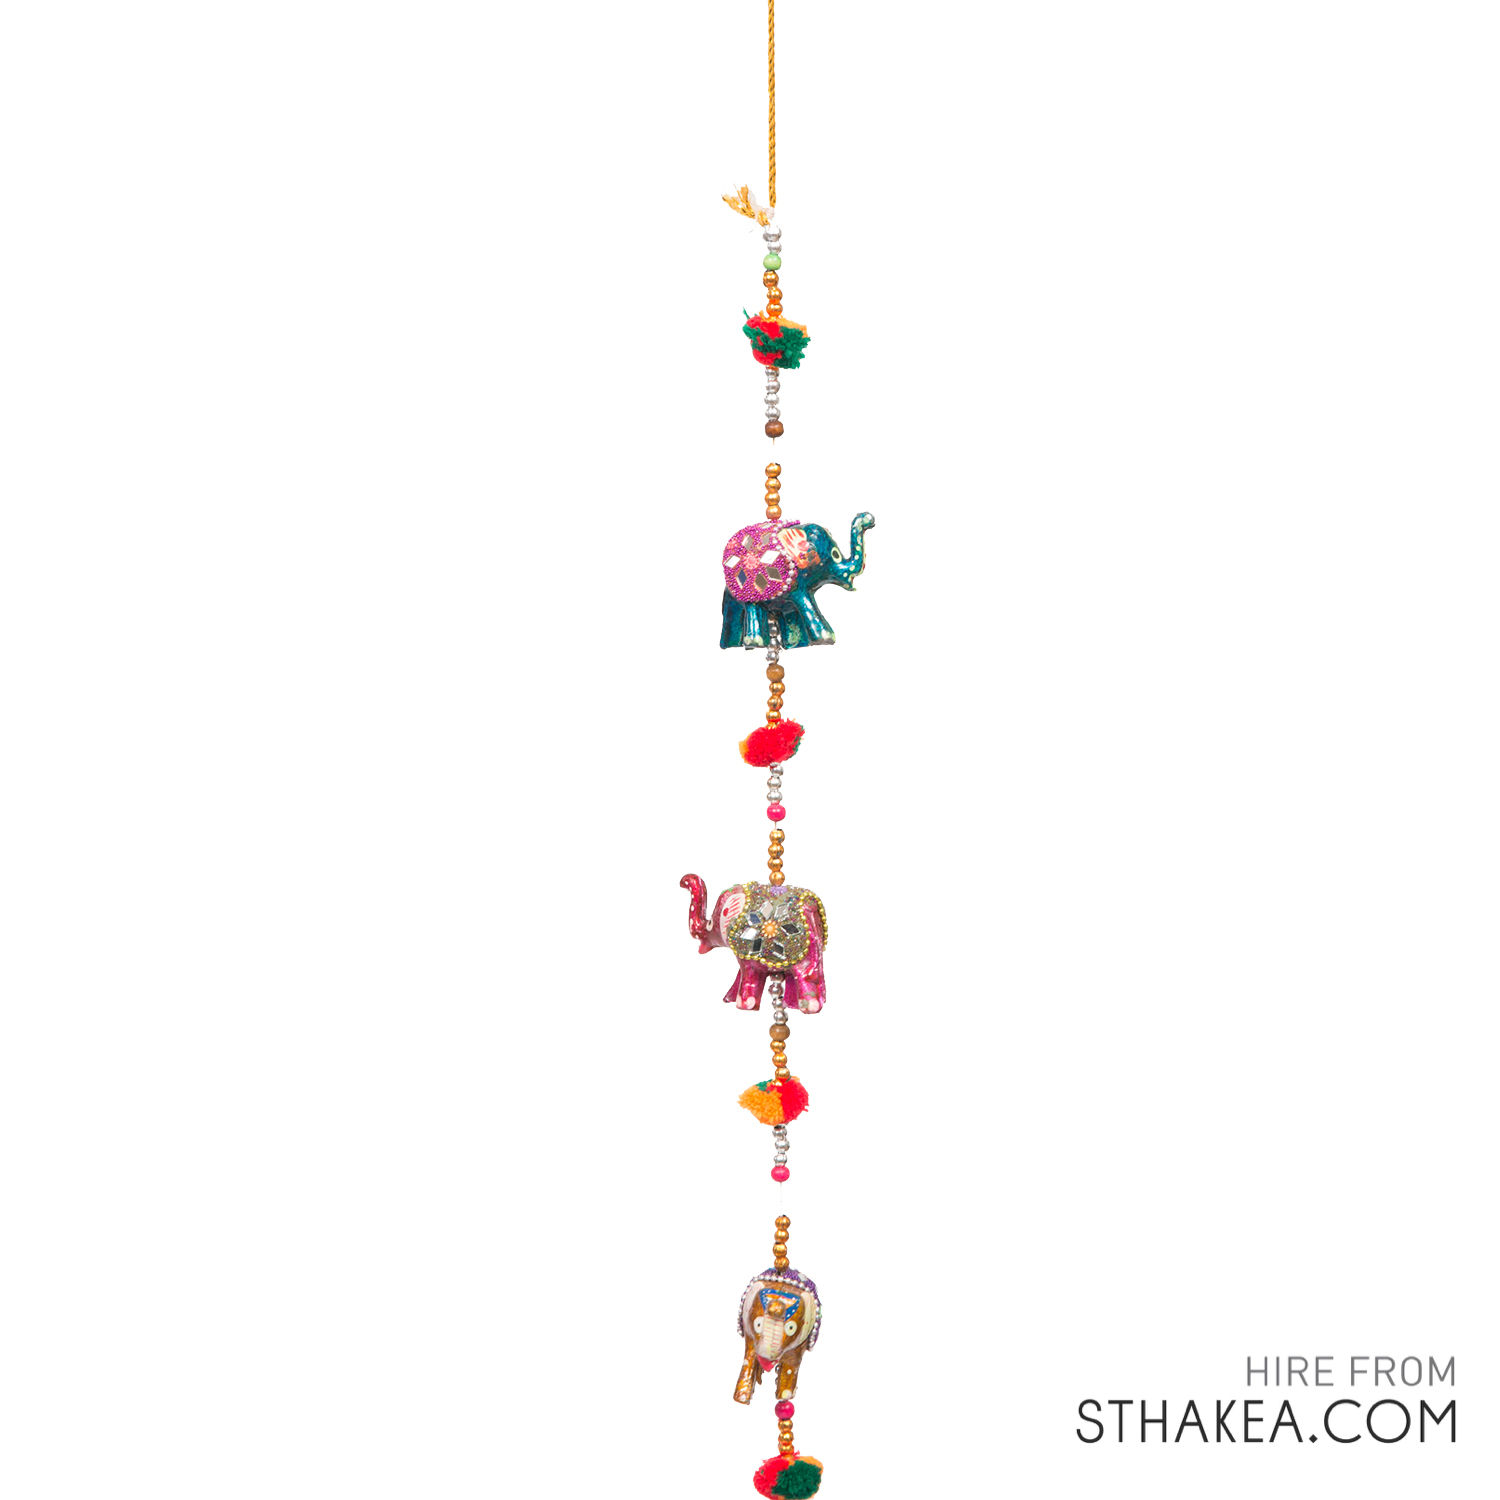 St-Hakea-Melbourne-Event-Hire-Indian -Colourful-Elephant-Hanging-.jpg